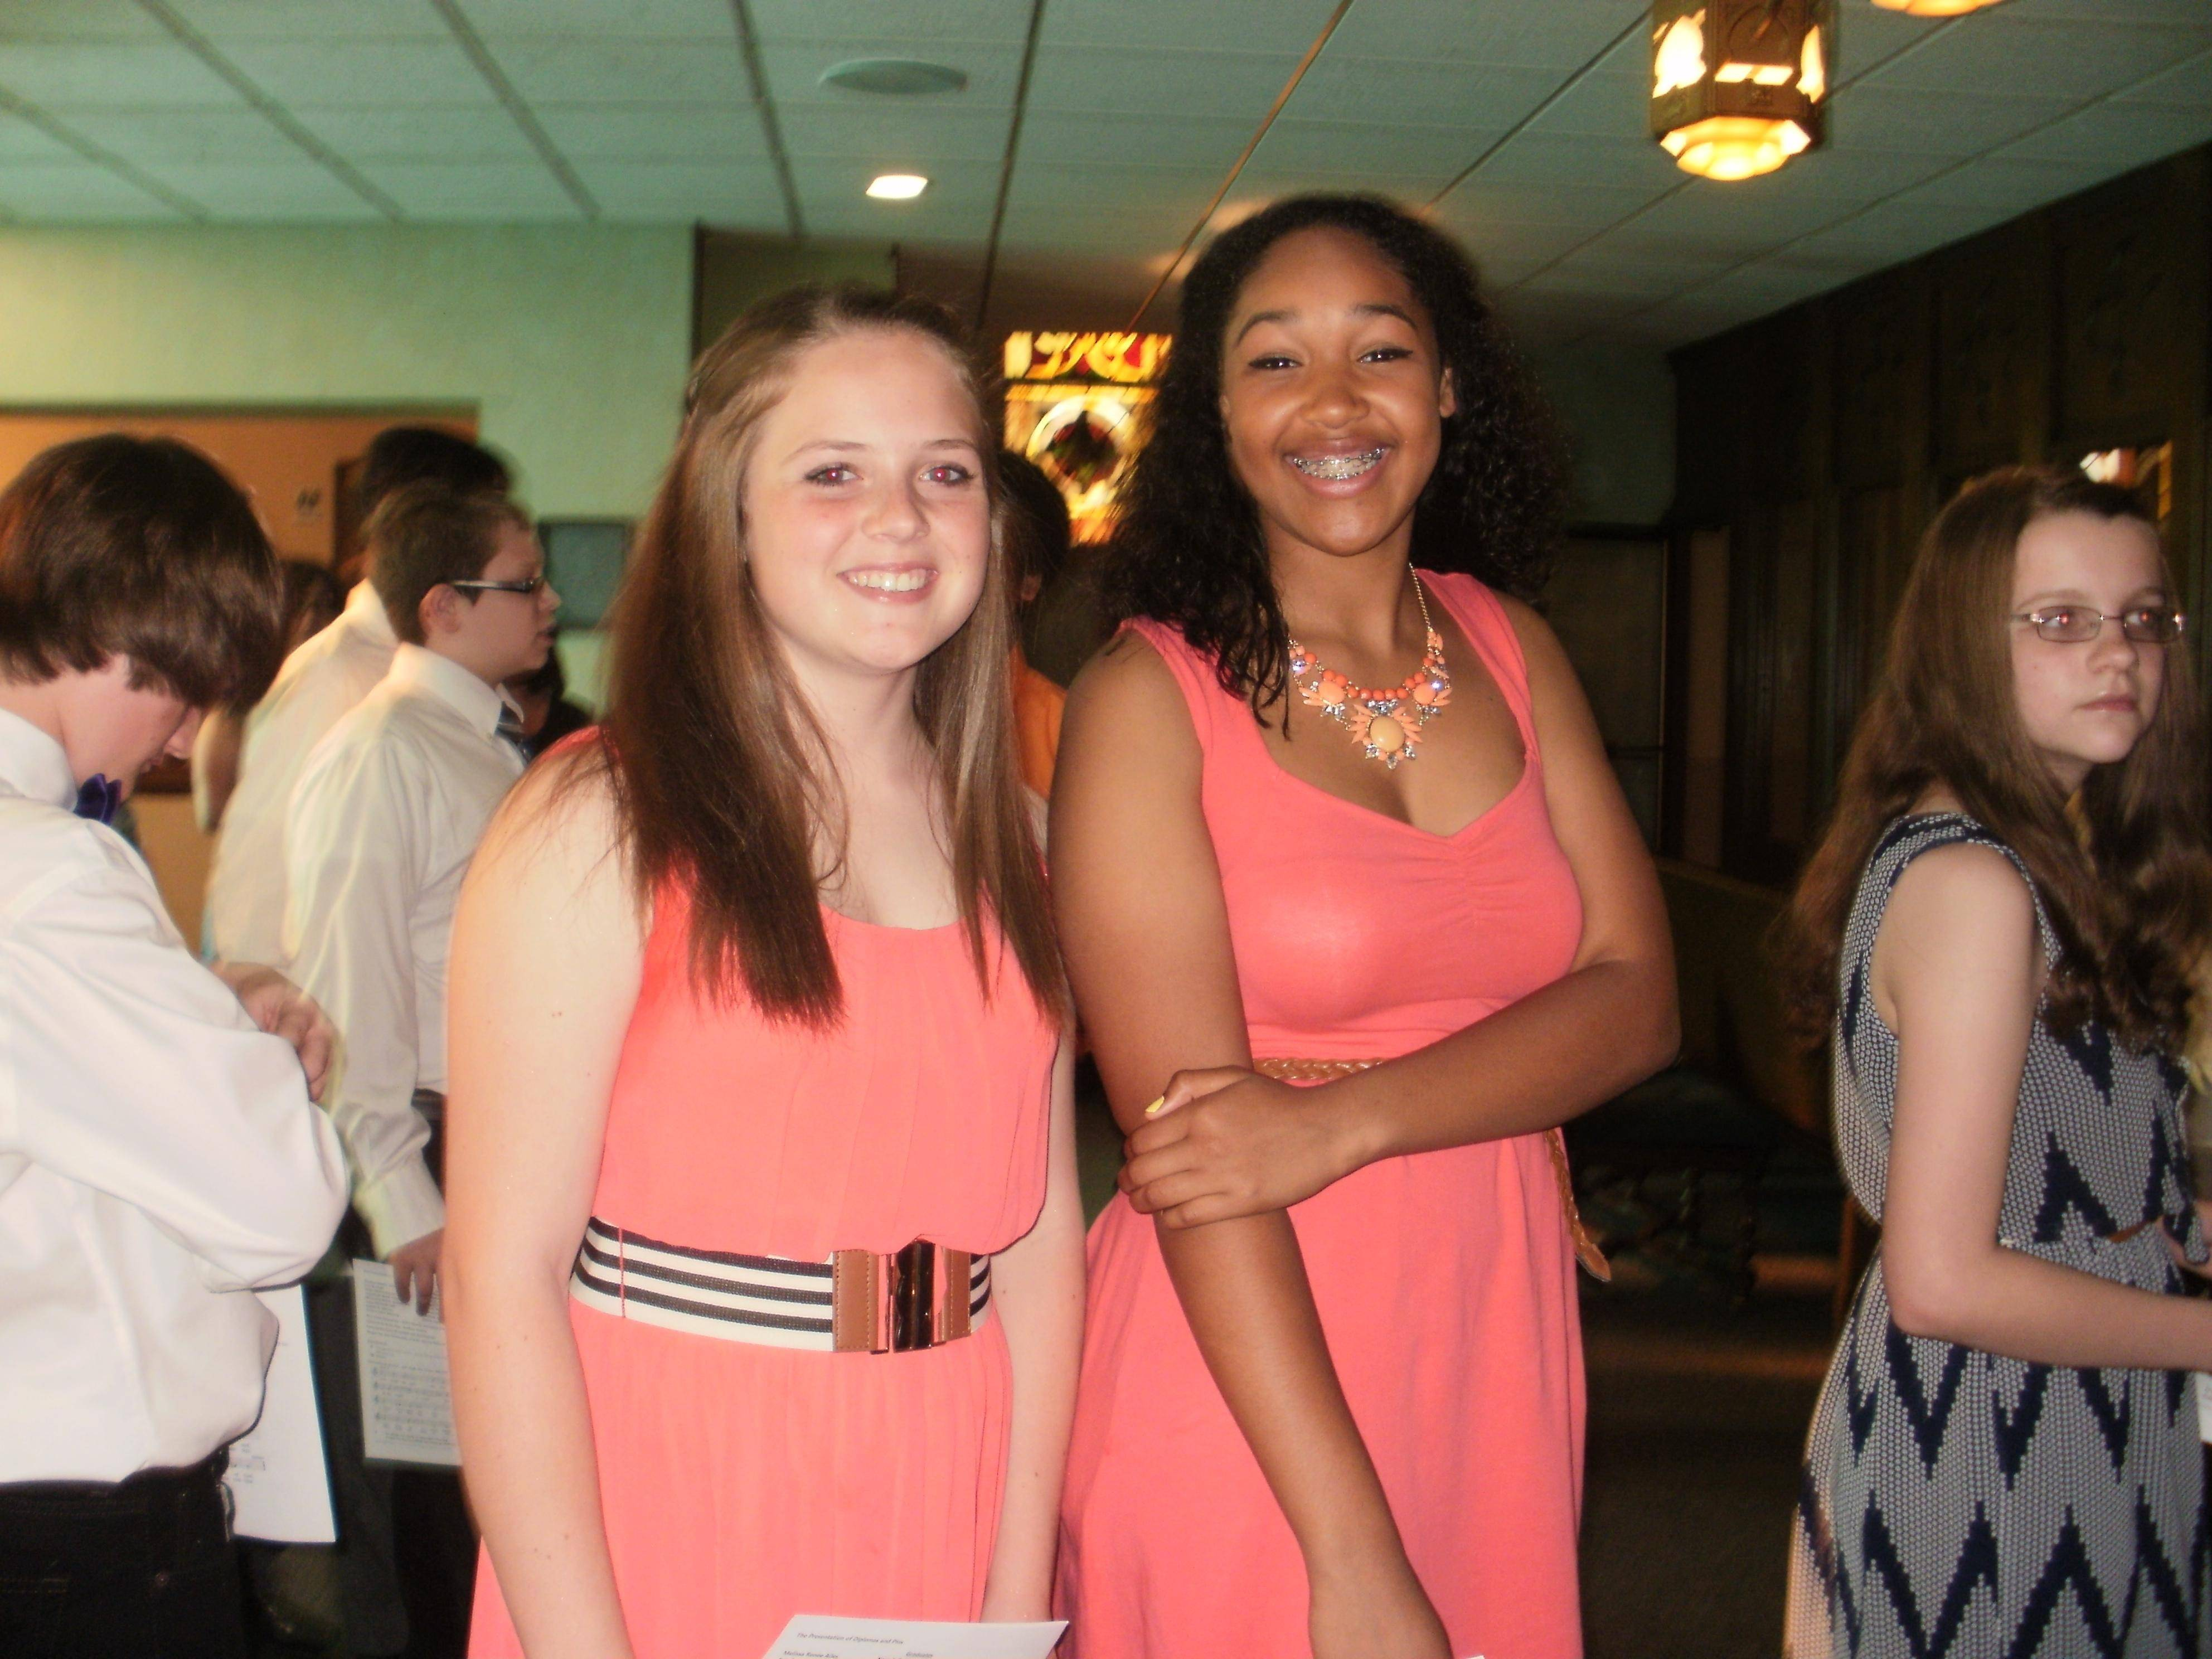 Michaela Gundersen and Erika Burns graduate from eighth grade at St. John Lutheran School in Elgin.